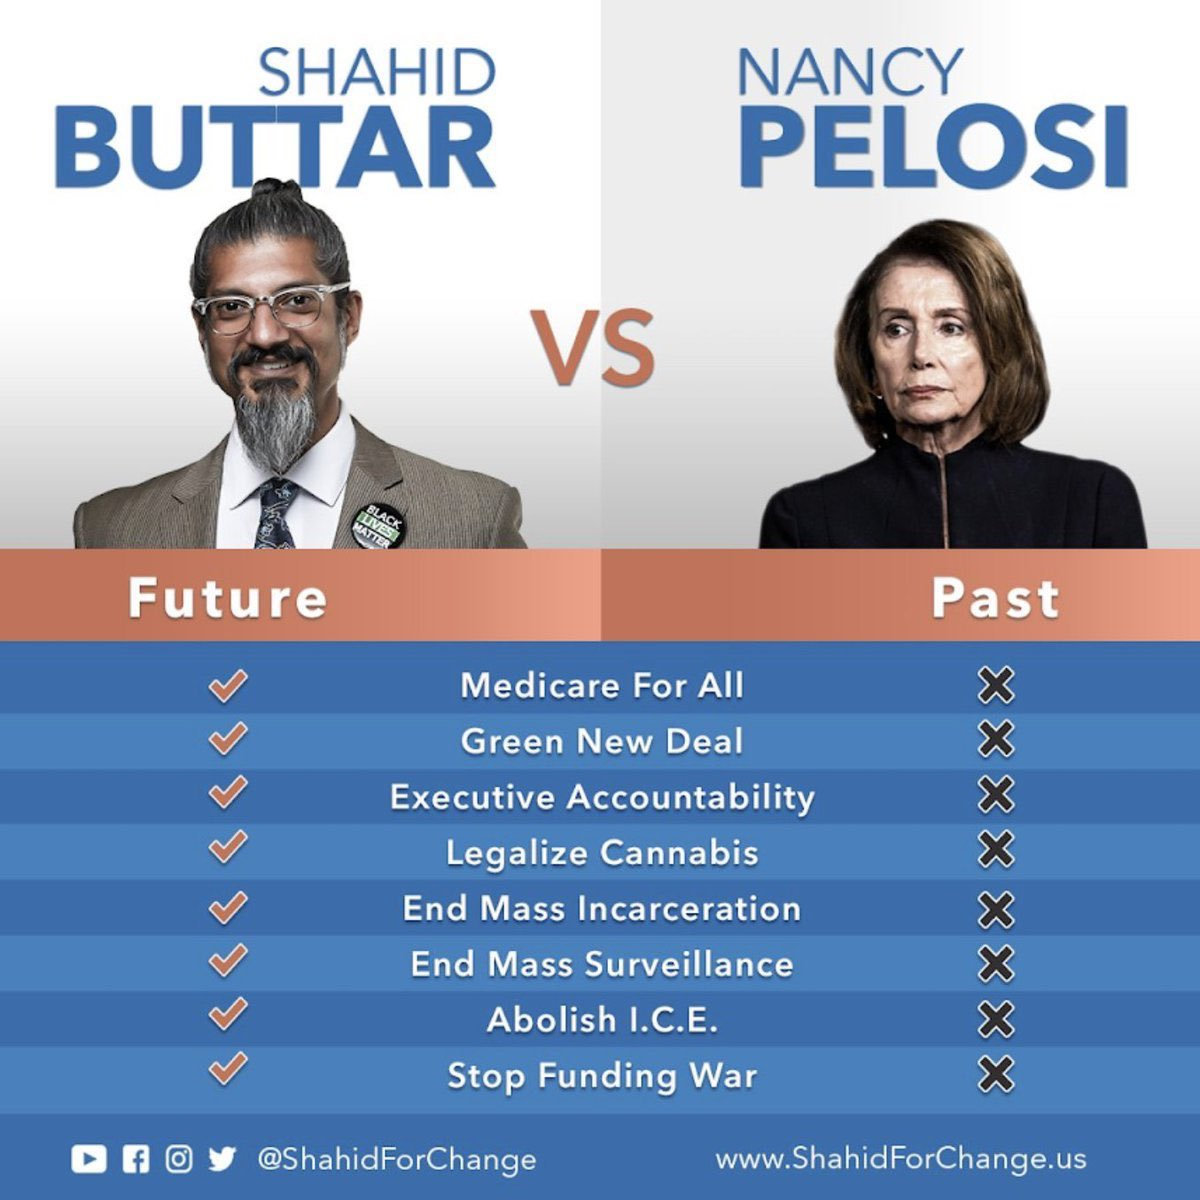 She doesn't support Medicare for All. She doesn't support a Green New Deal. She doesn't support ending mass incarceration. She doesn't support ending endless wars. So yes it is time to replace @SpeakerPelosi with an actual progressive  @ShahidForChange. #PelosiMustGo<br>http://pic.twitter.com/sdl1c58RSF